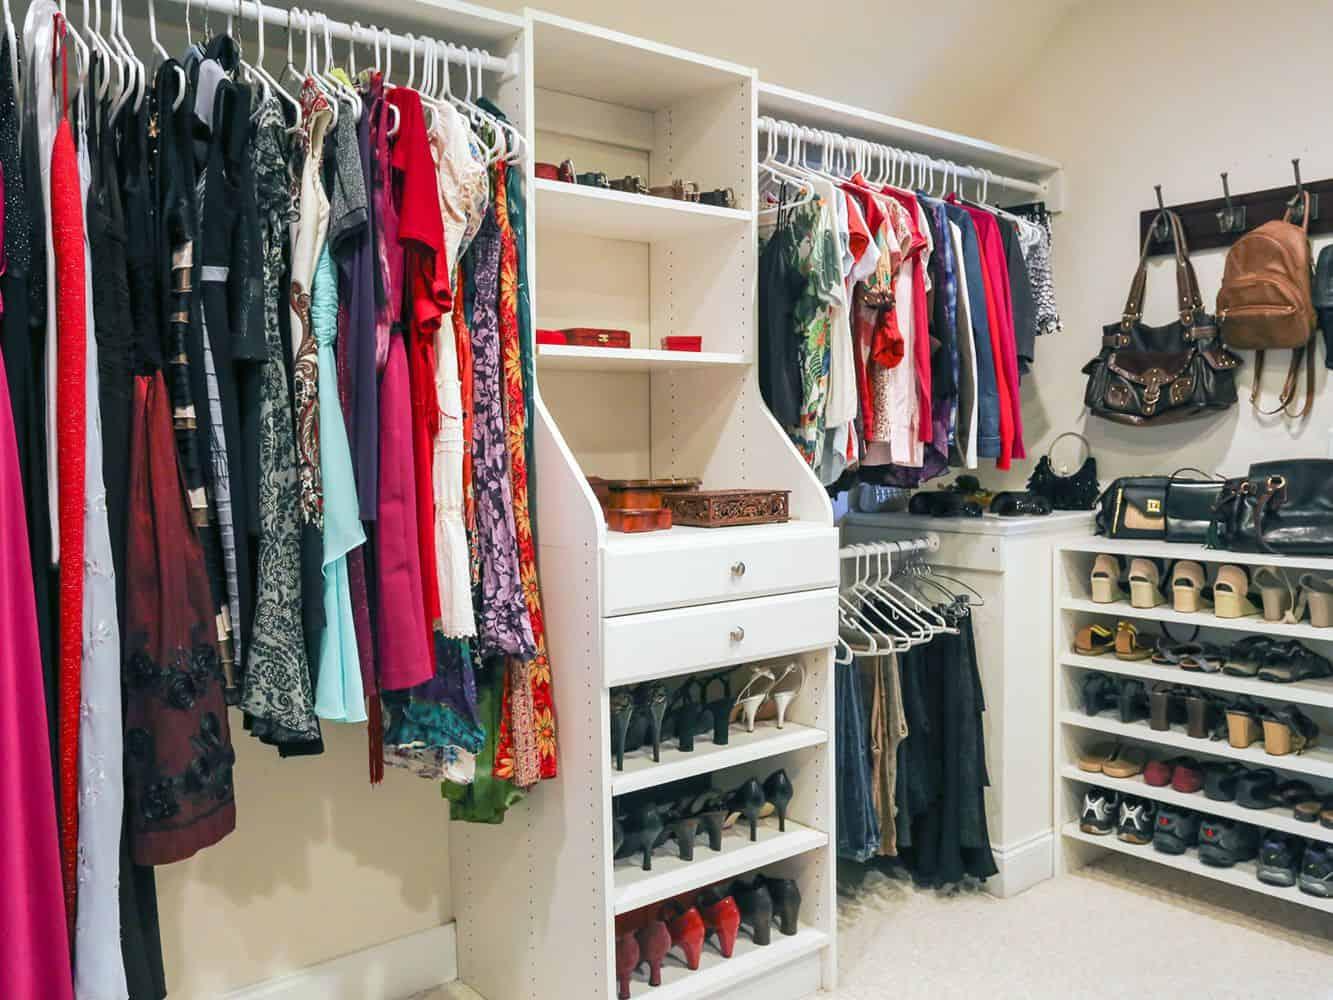 Daily Outfit Hanging Closet